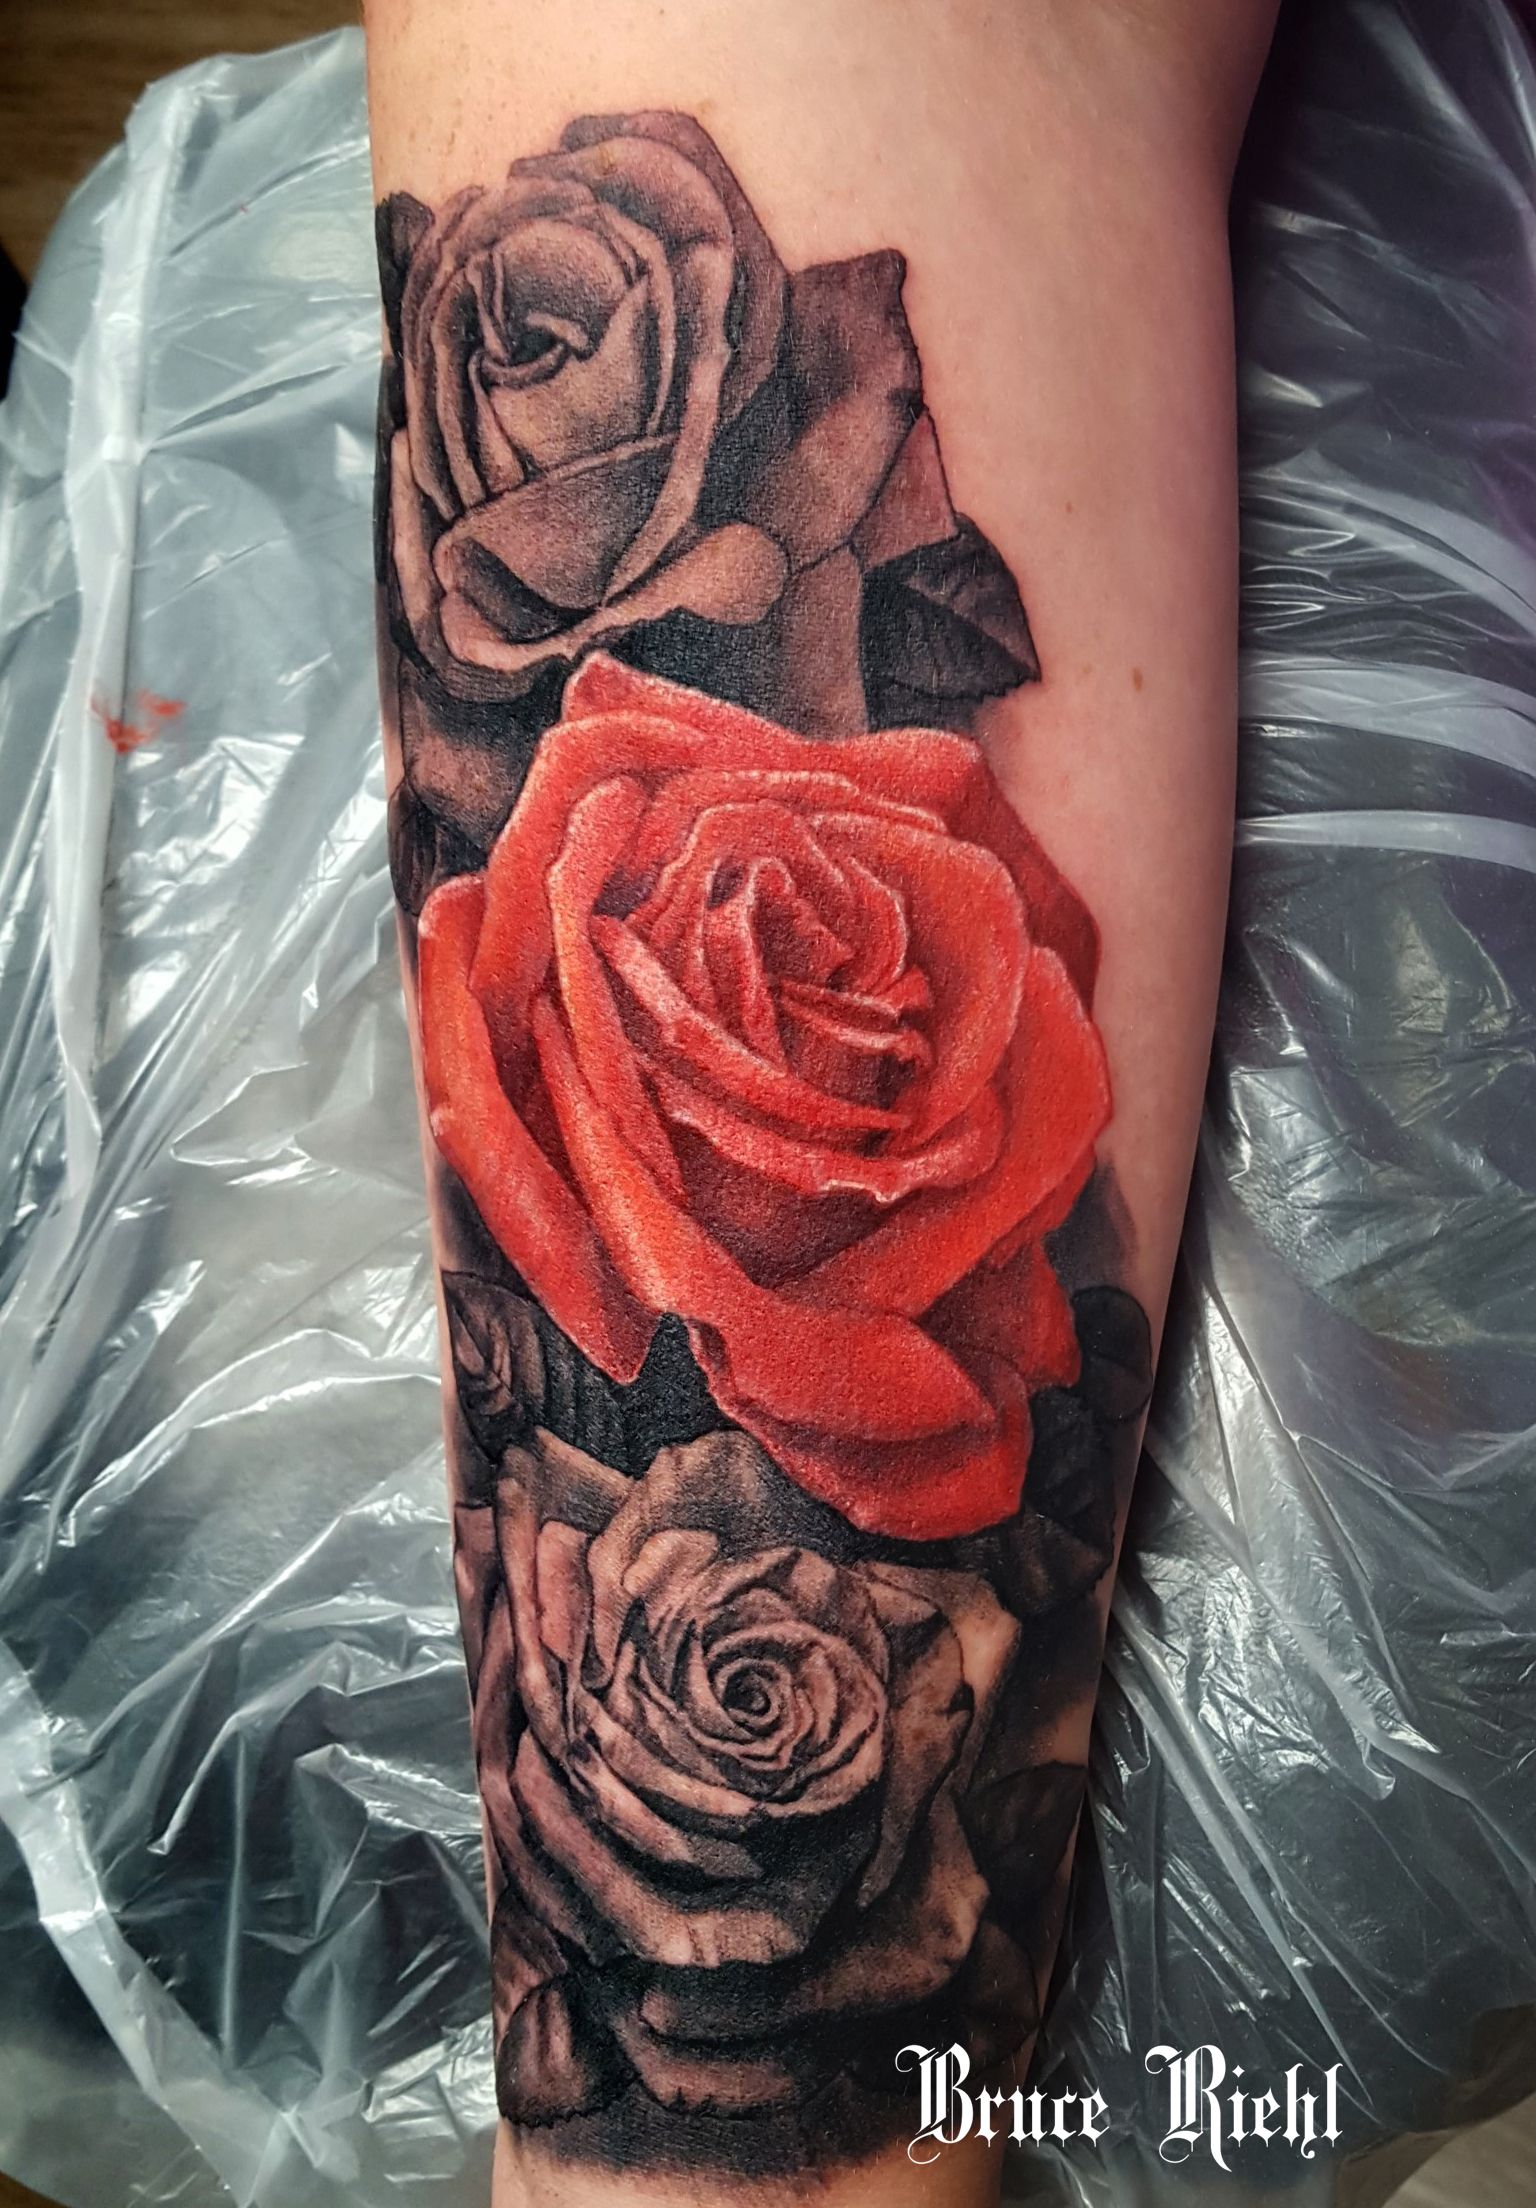 One Realistic Red Rose With Black And Grey Roses By Bruce Riehl